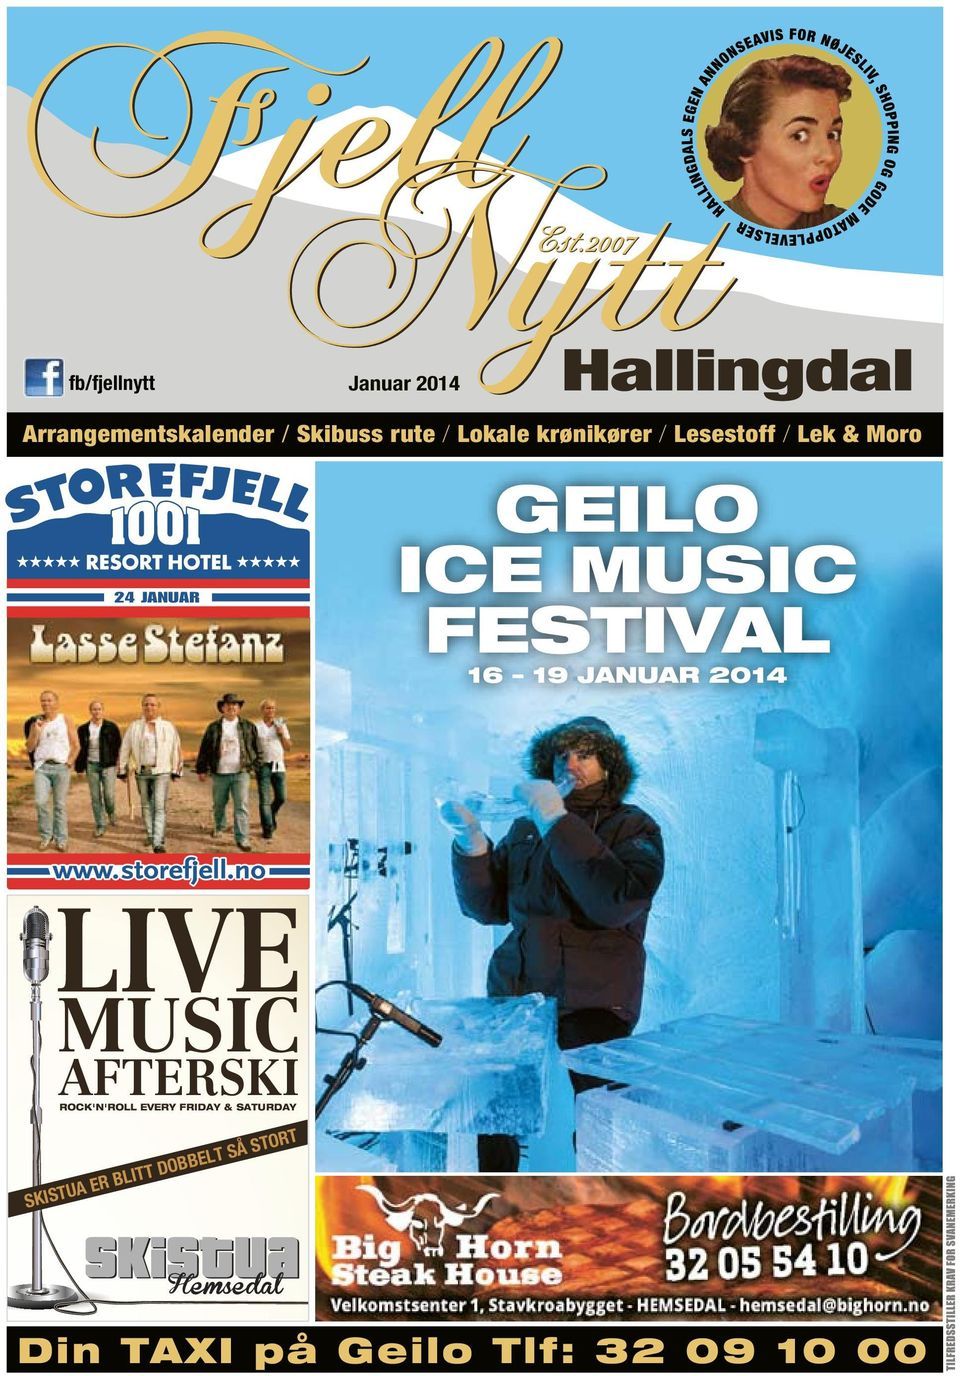 FESTIVAL 16 19 JANUAR 2014 LIVE MUSIC AFTERSKI ROCK'N'ROLL EVERY FRIDAY &